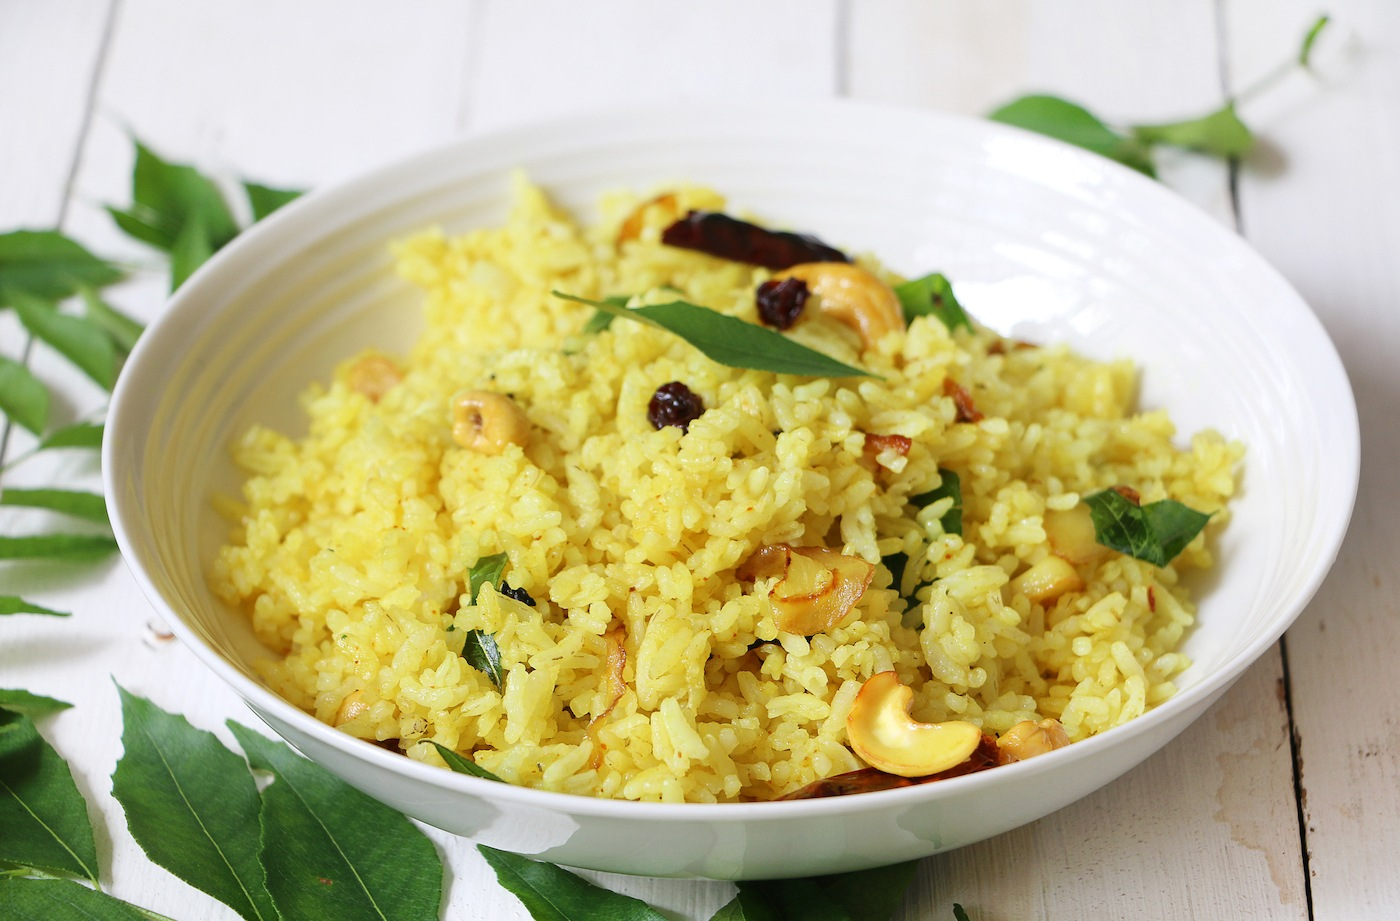 I spent a week in Bali, and this anti-inflammatory turmeric rice was the best thing I ate